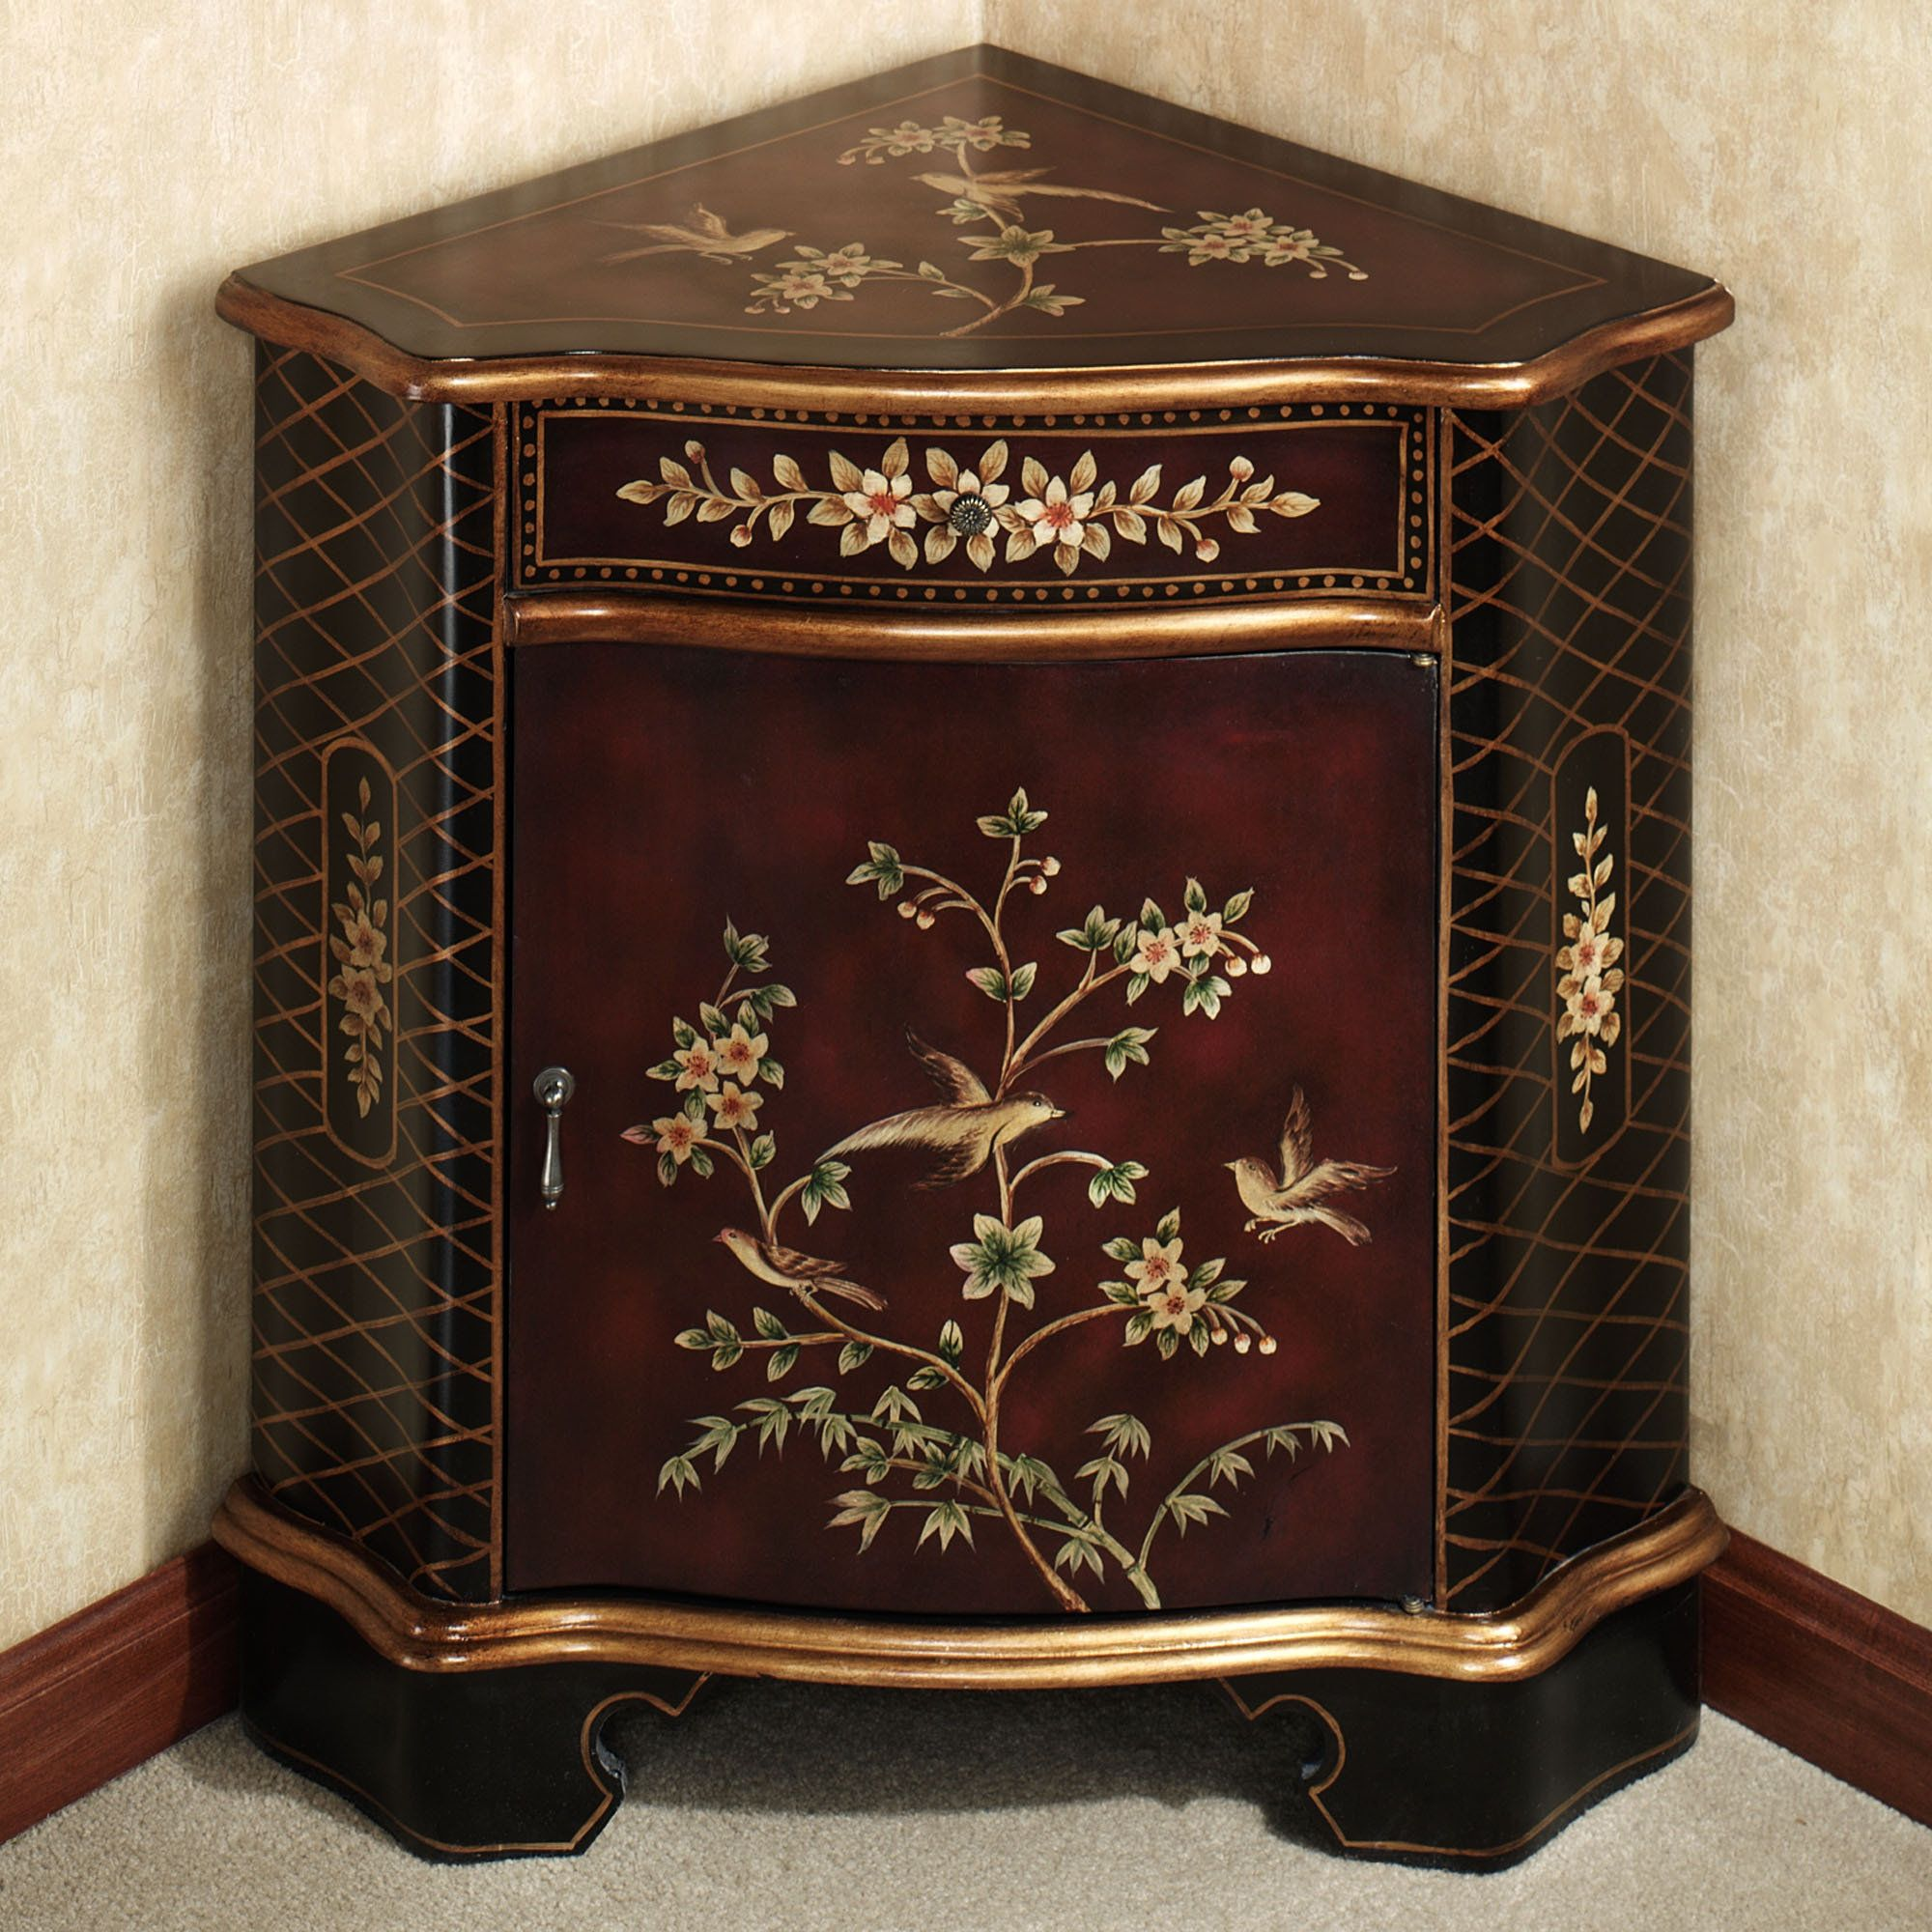 Dining Room Accent Pieces: Luxury Corner Accent Table For Dining Room Annika With